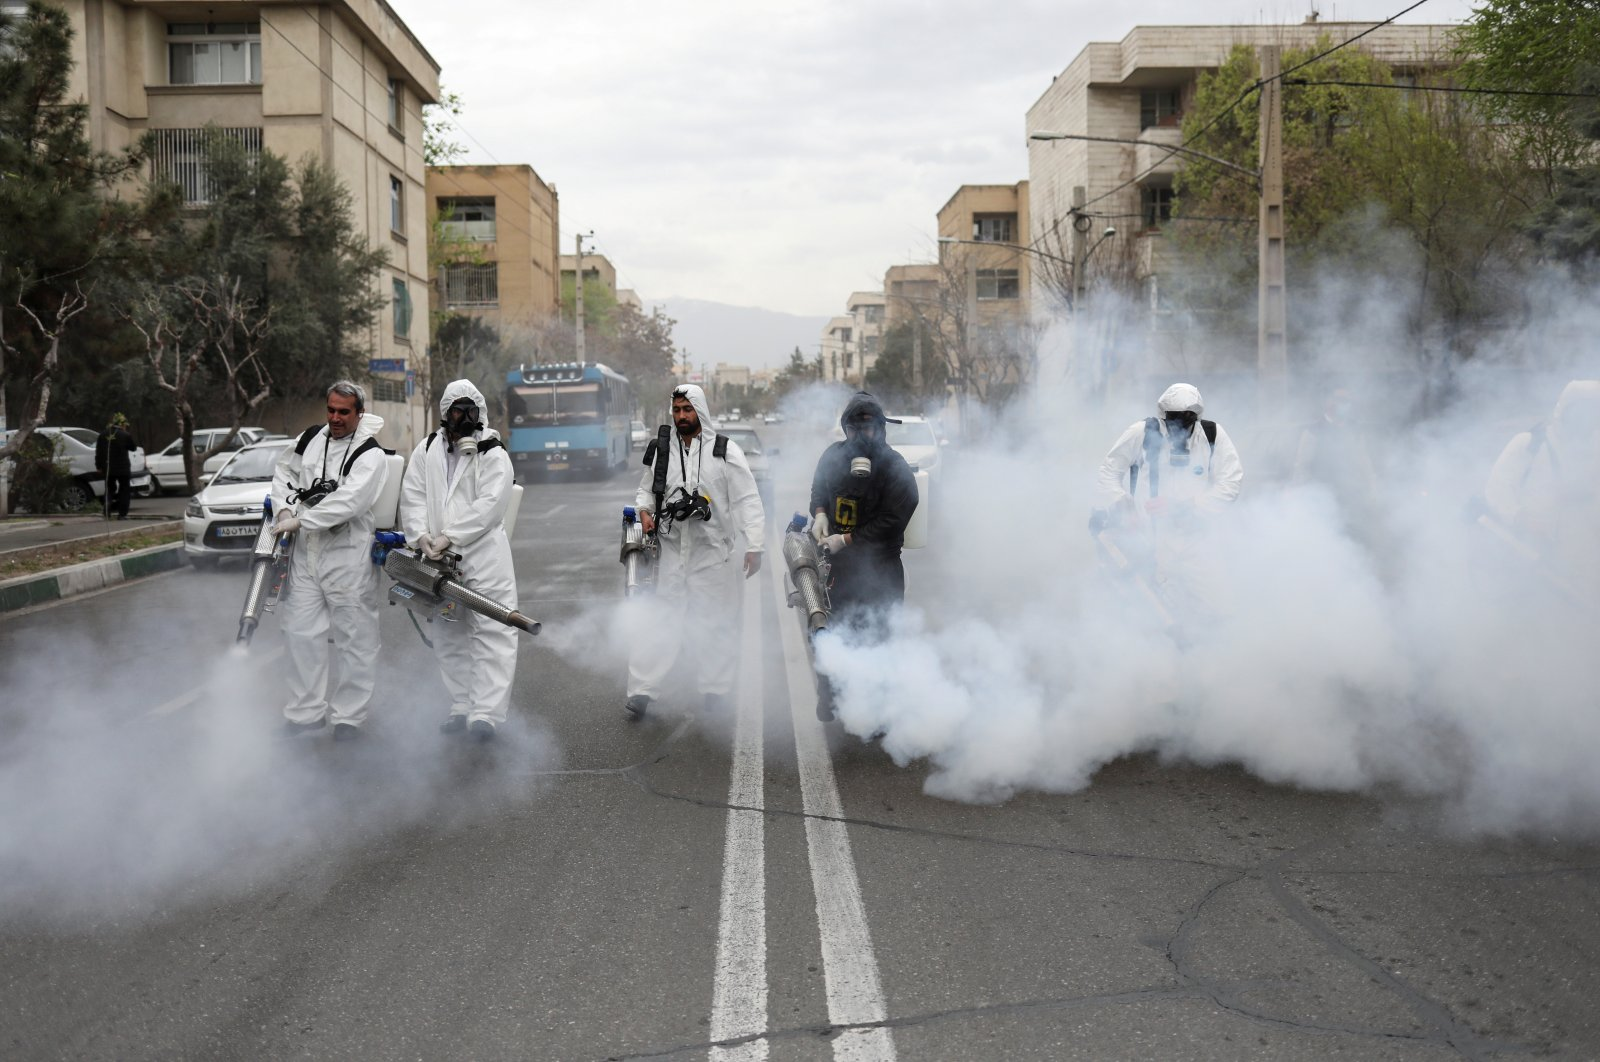 Members of firefighters wear protective face masks as they disinfect the streets, Tehran, March 18, 2020. (REUTERS Photo)